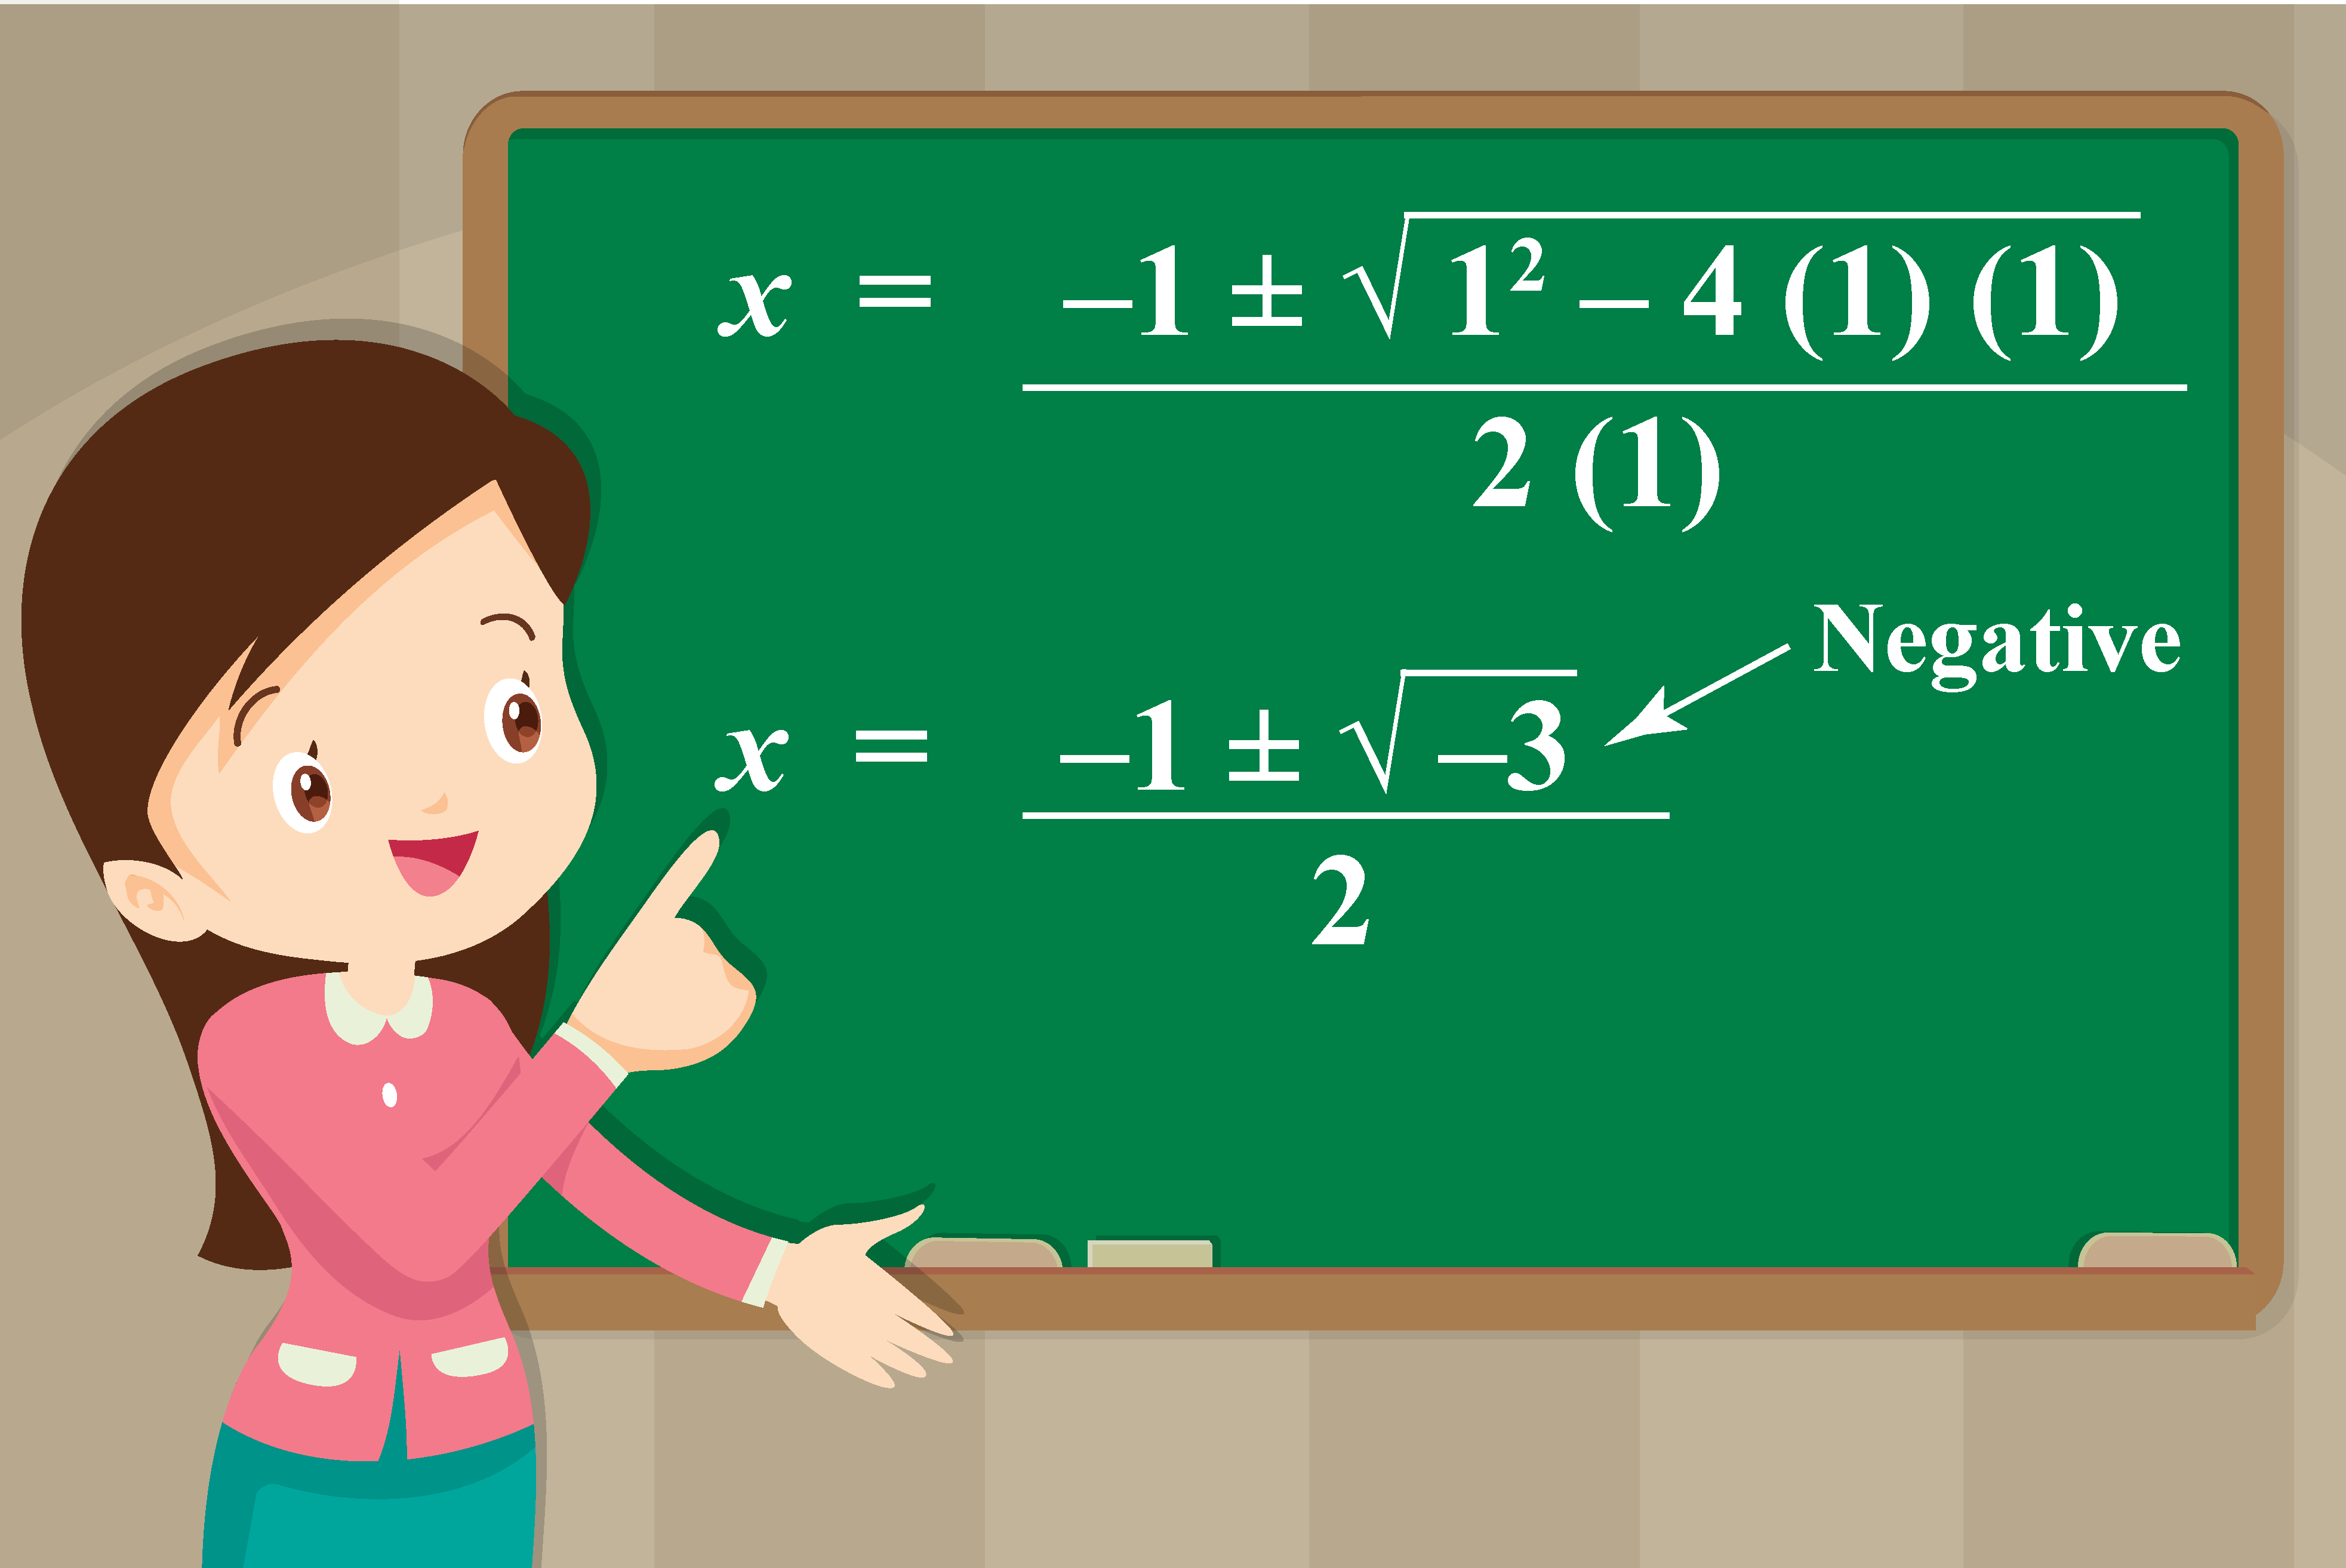 complex numbers introduction: iota , i equals square root -1